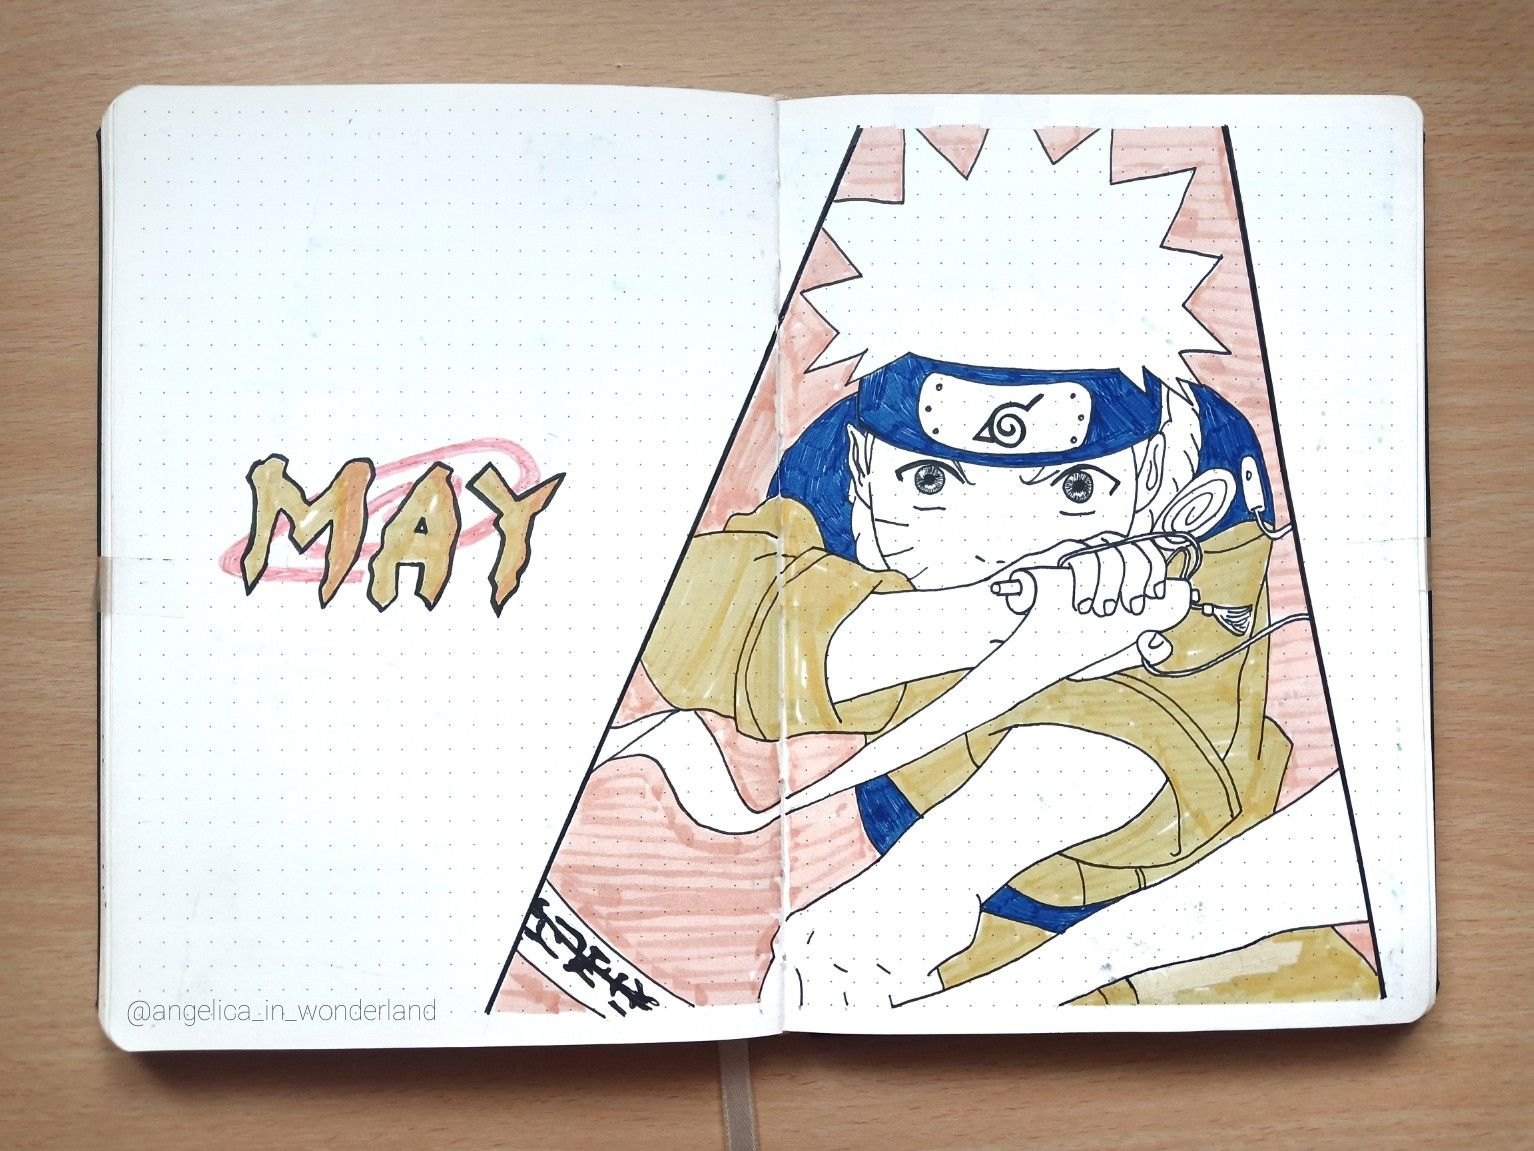 Naruto Themed May 2019 Anime Bullet Journal Cover Page Bullet Journal Themes Bullet Journal Ideas Pages Bullet Journal Aesthetic